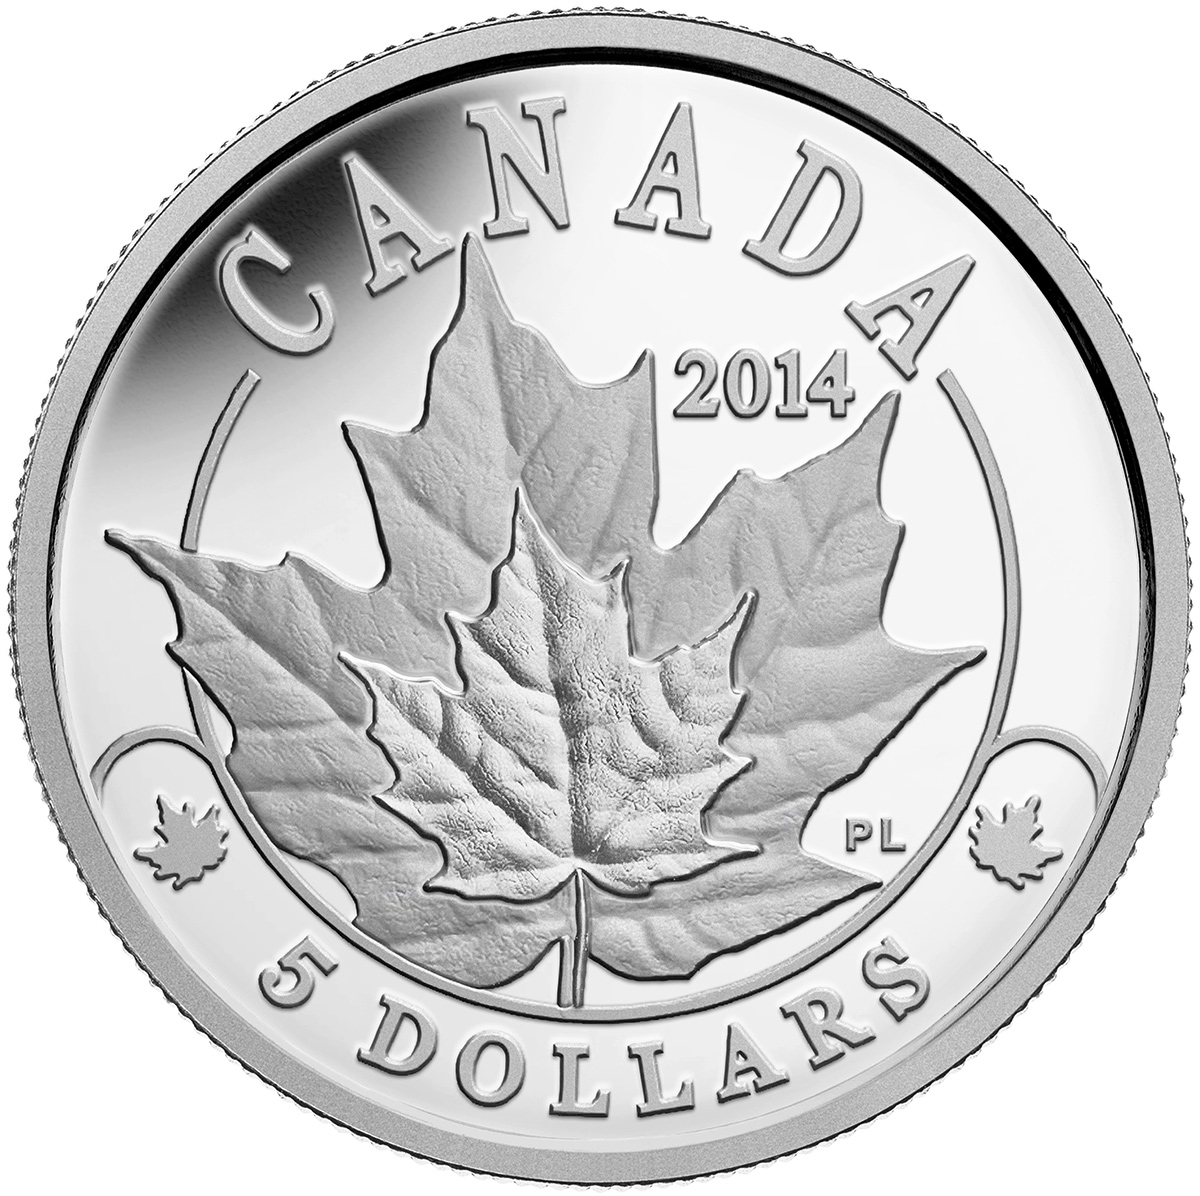 2014 5 Platinum Coin Overlaid Majestic Maple Leaves